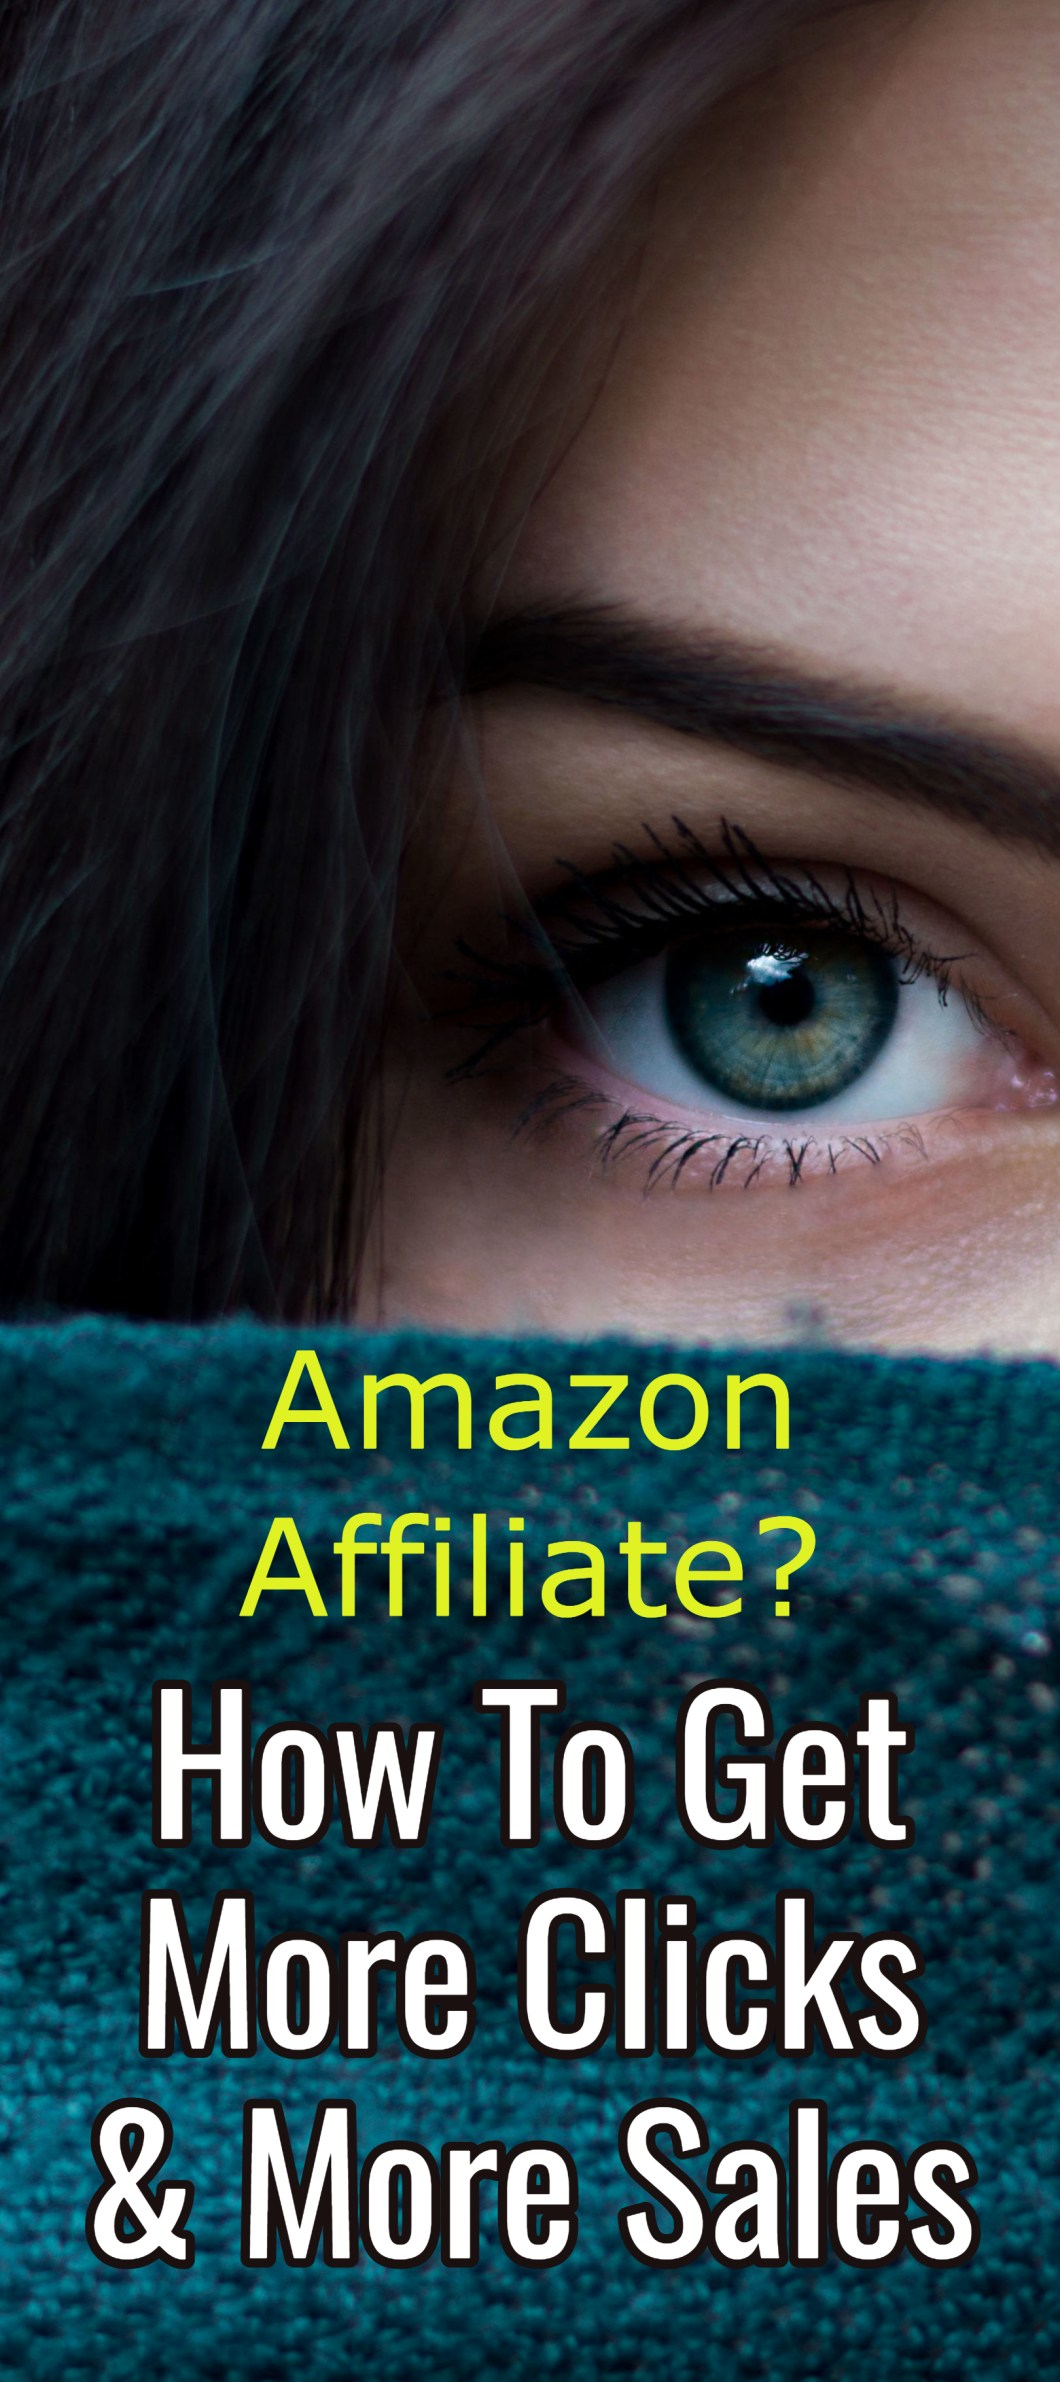 Hey Amazon Affiliate: Think your blog posts could make MORE sales? You're probably right! I see so many affiliate bloggers leaving TONS of money on the table simply because they don't do these SIMPLE things